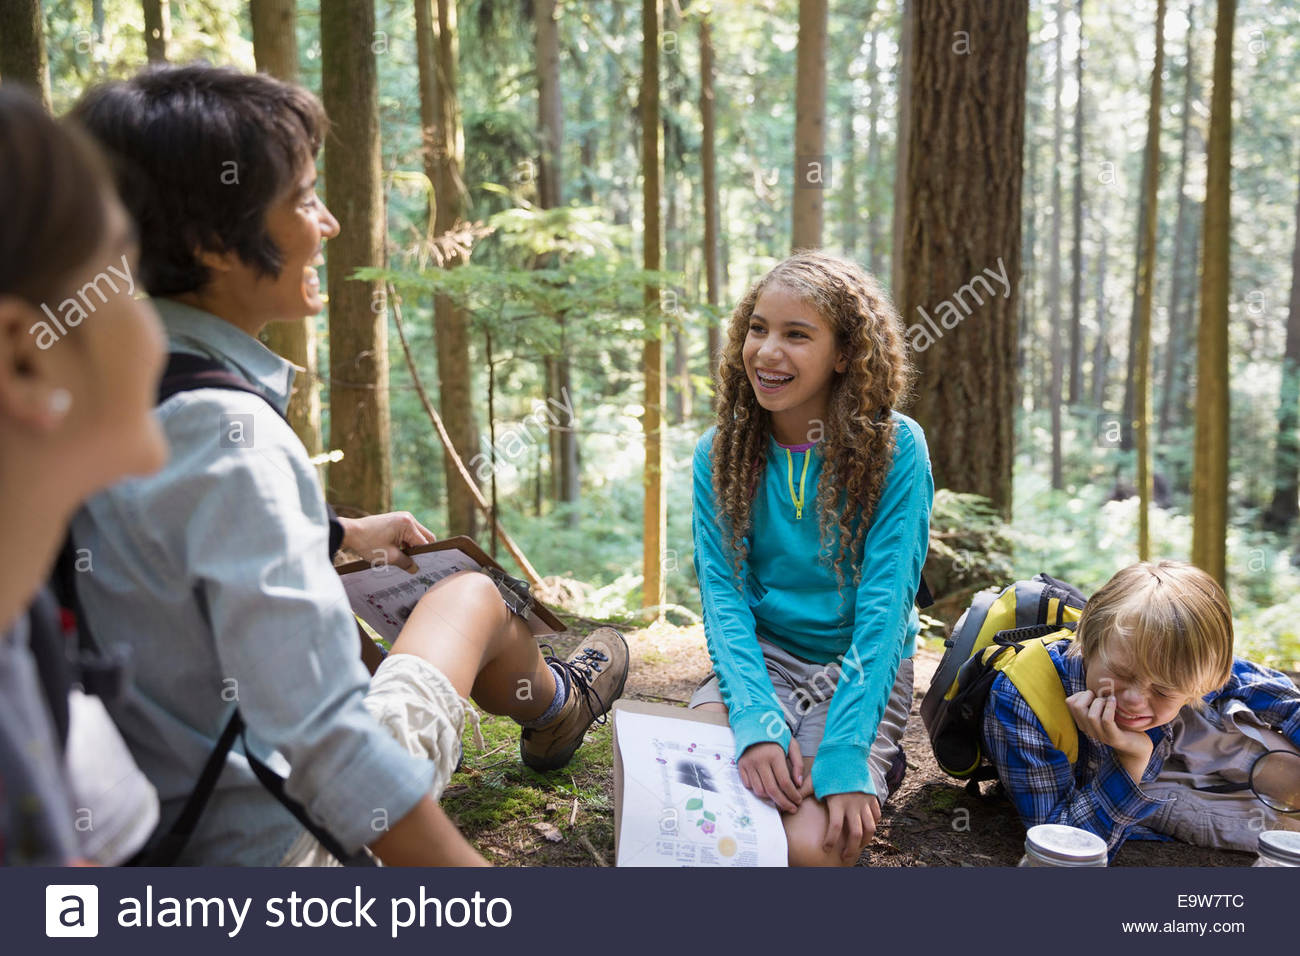 Teacher and children laughing in woods - Stock Image